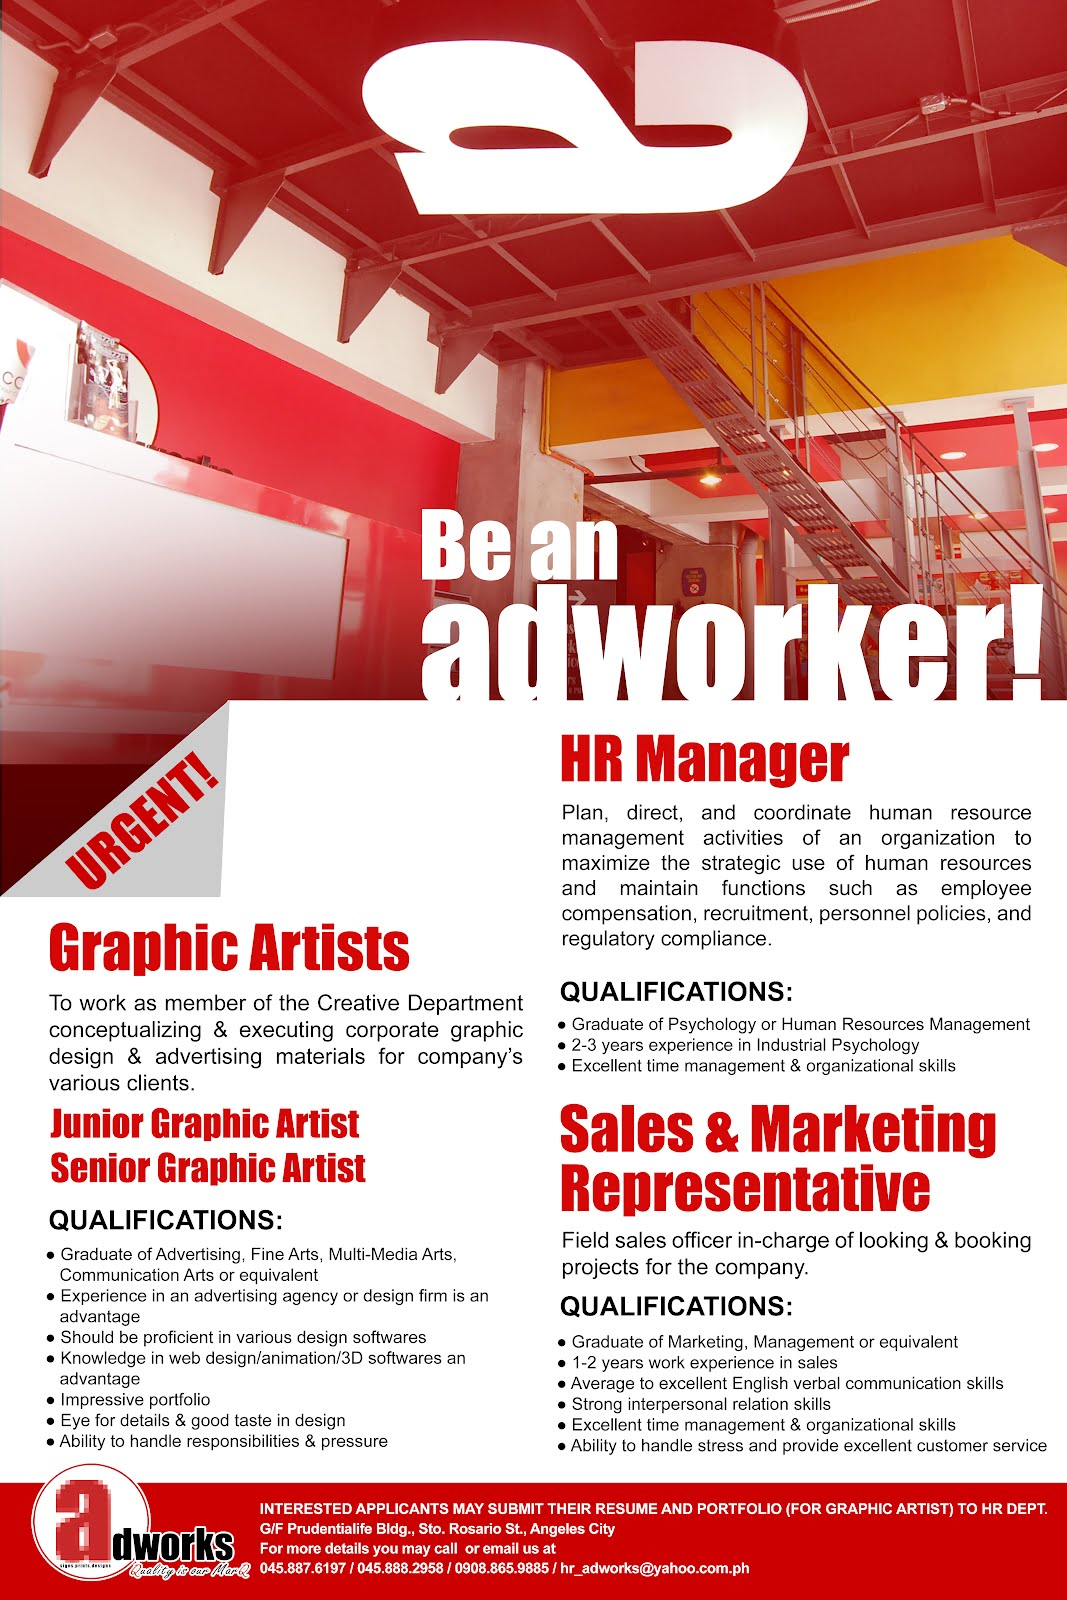 Stunning Graphic Designer Jobs From Home Images Interior Design